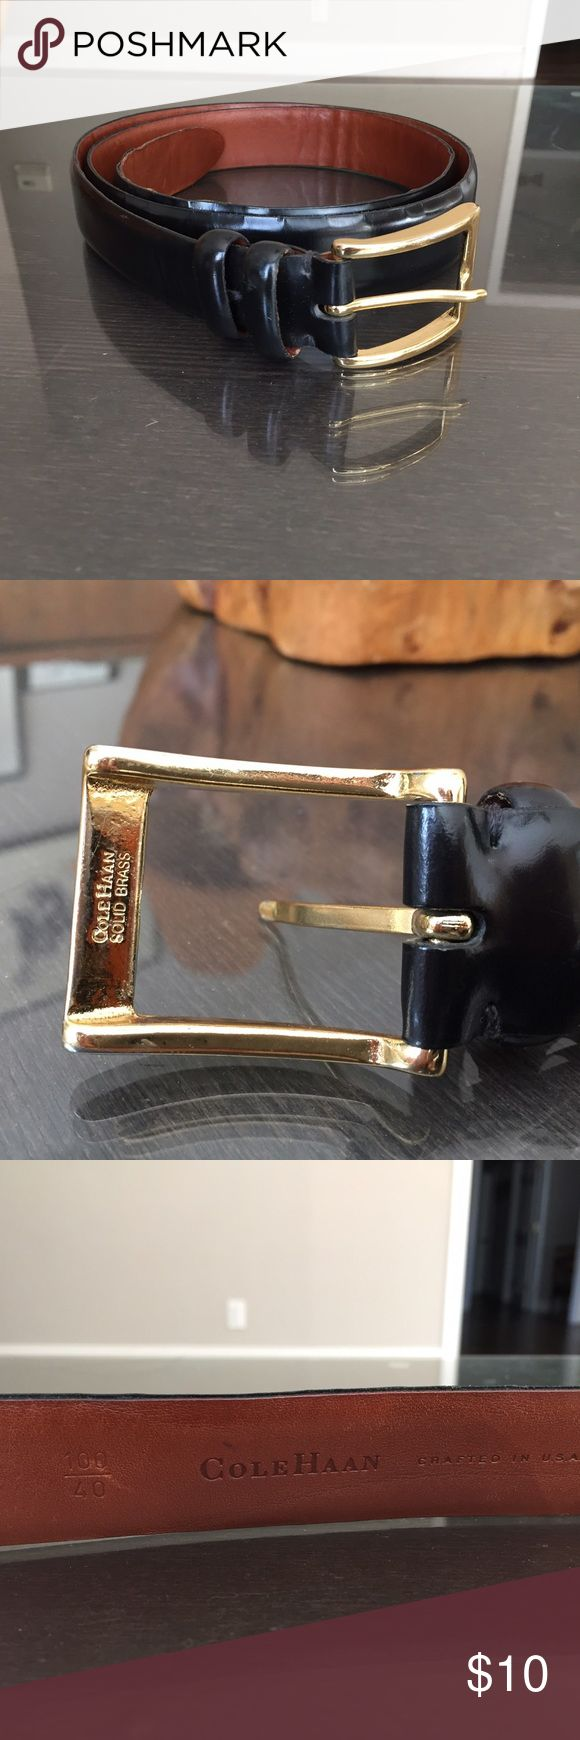 Cole Haan 2 tone leather belt Really professional and classy 2 tone leather belt by Cole Haan.  In great condition except for the most use part of the belt is starting to separate (see picture) but still have a lot of life to it. Cole Haan Accessories Belts